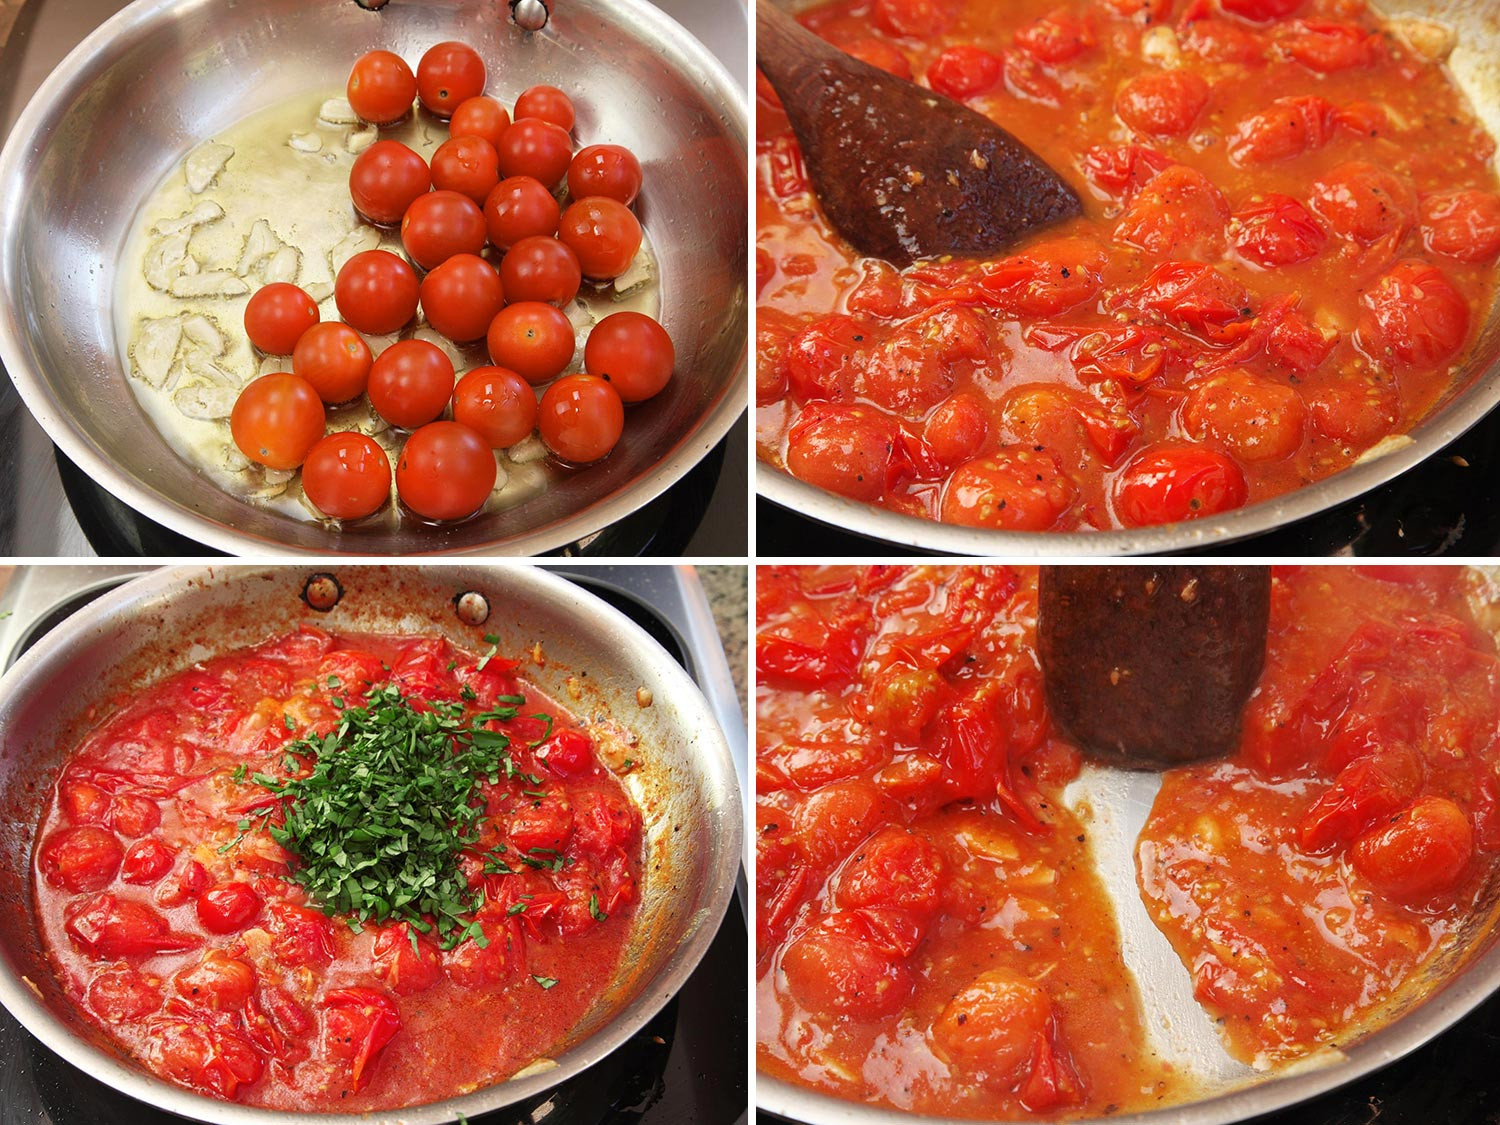 How To Make Homemade Pasta Sauce  how to make pasta sauce from tomato juice